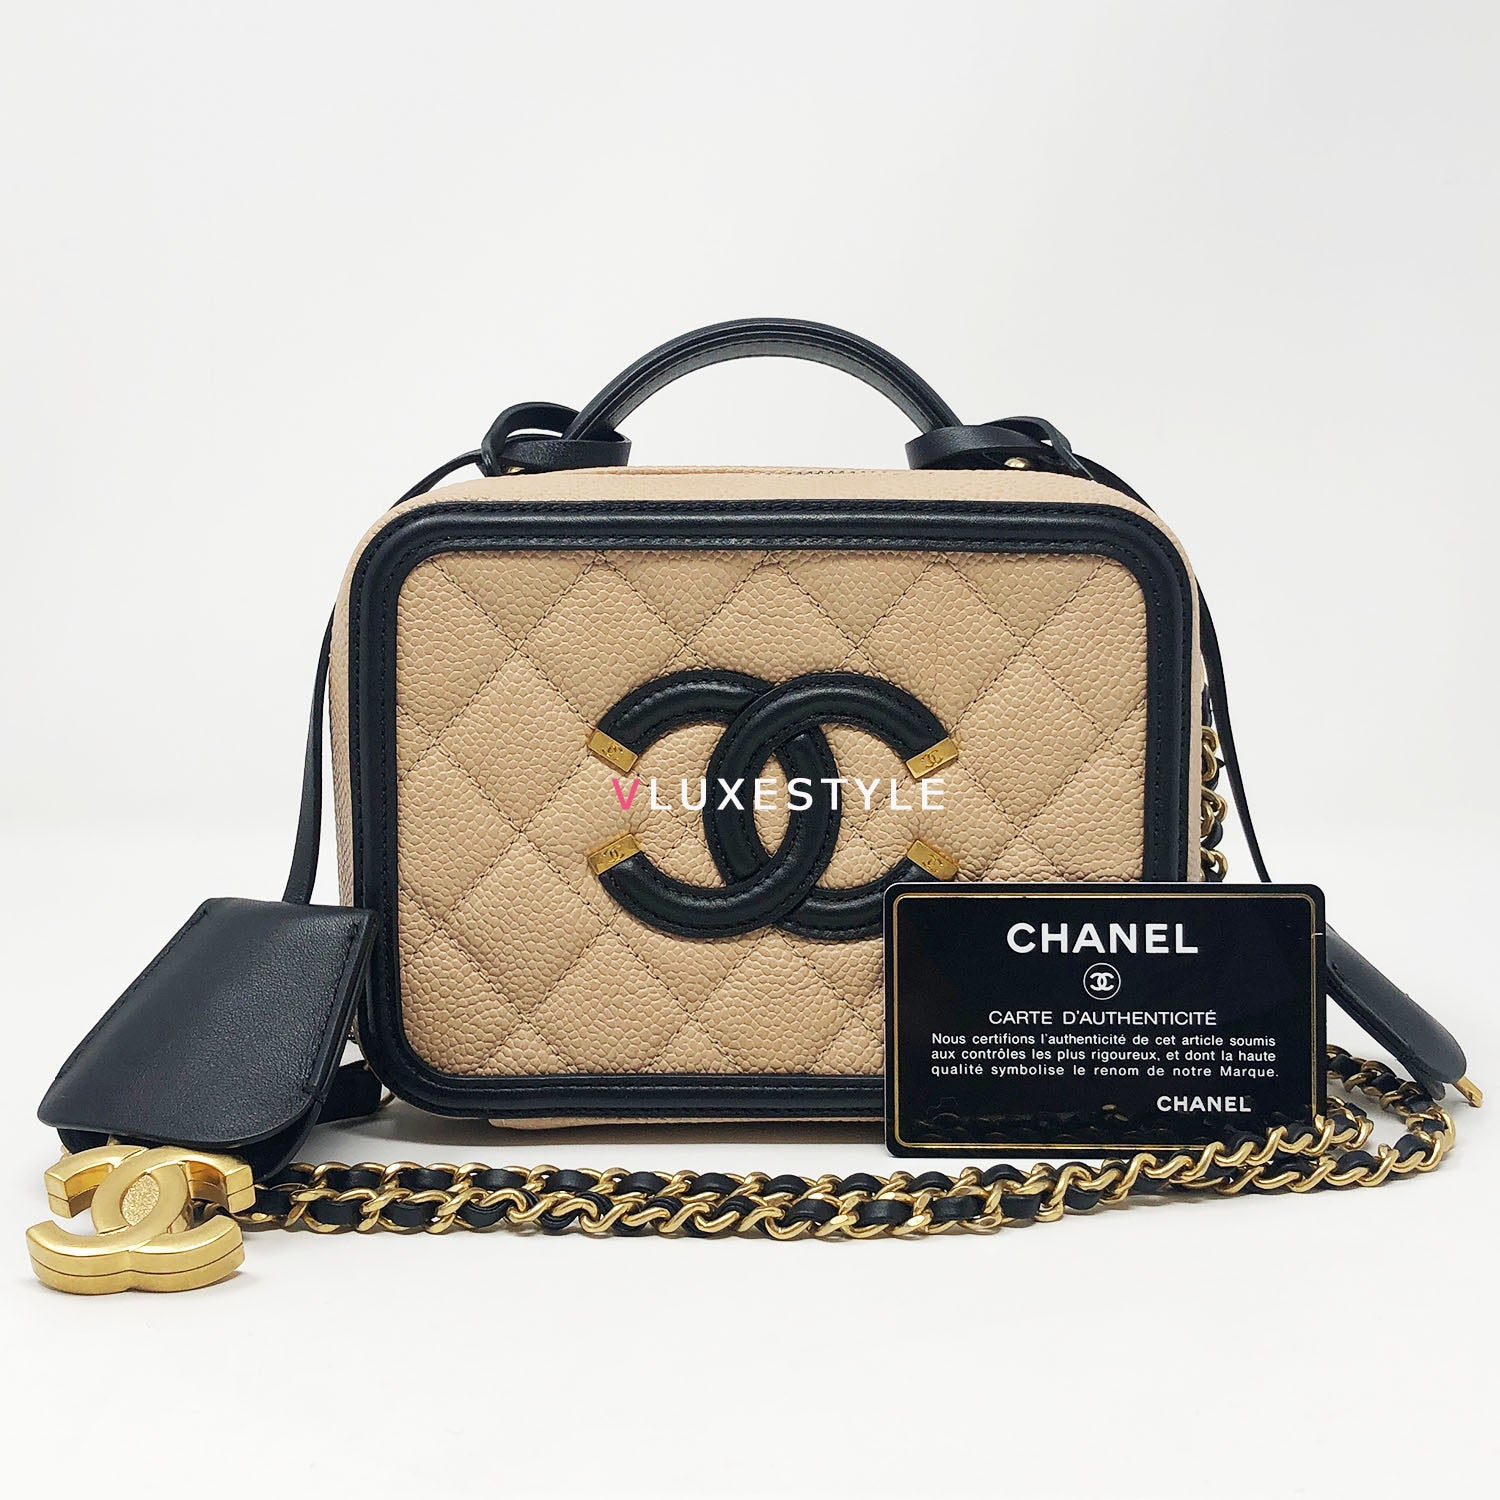 Chanel Small Filigree Vanity Case Beige Black Quilted Caviar Vluxestyle